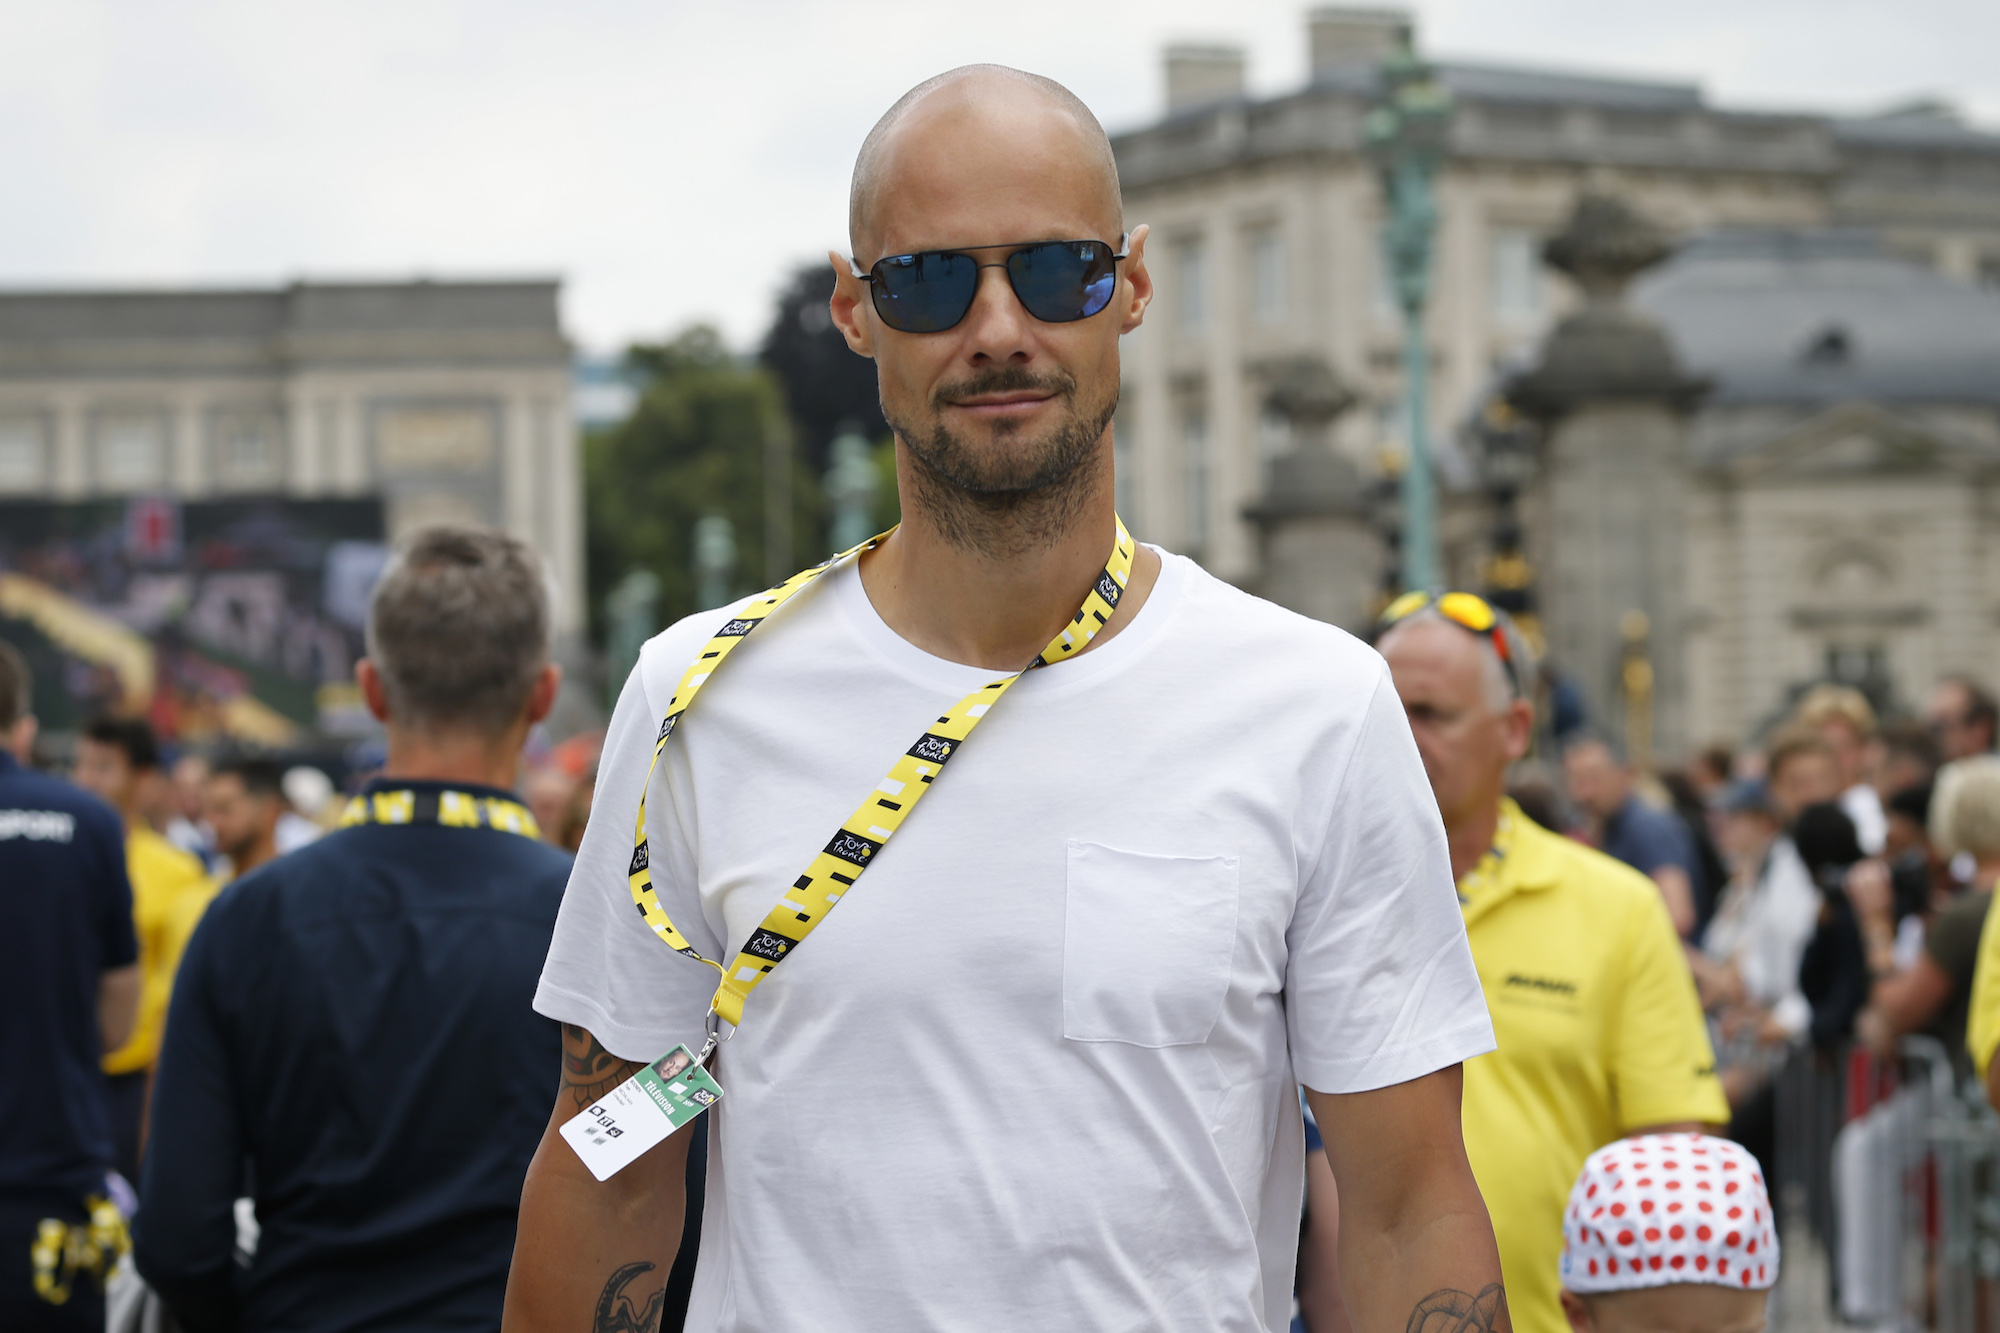 Tom Boonen narrowly escapes injury after high-speed racing car crash